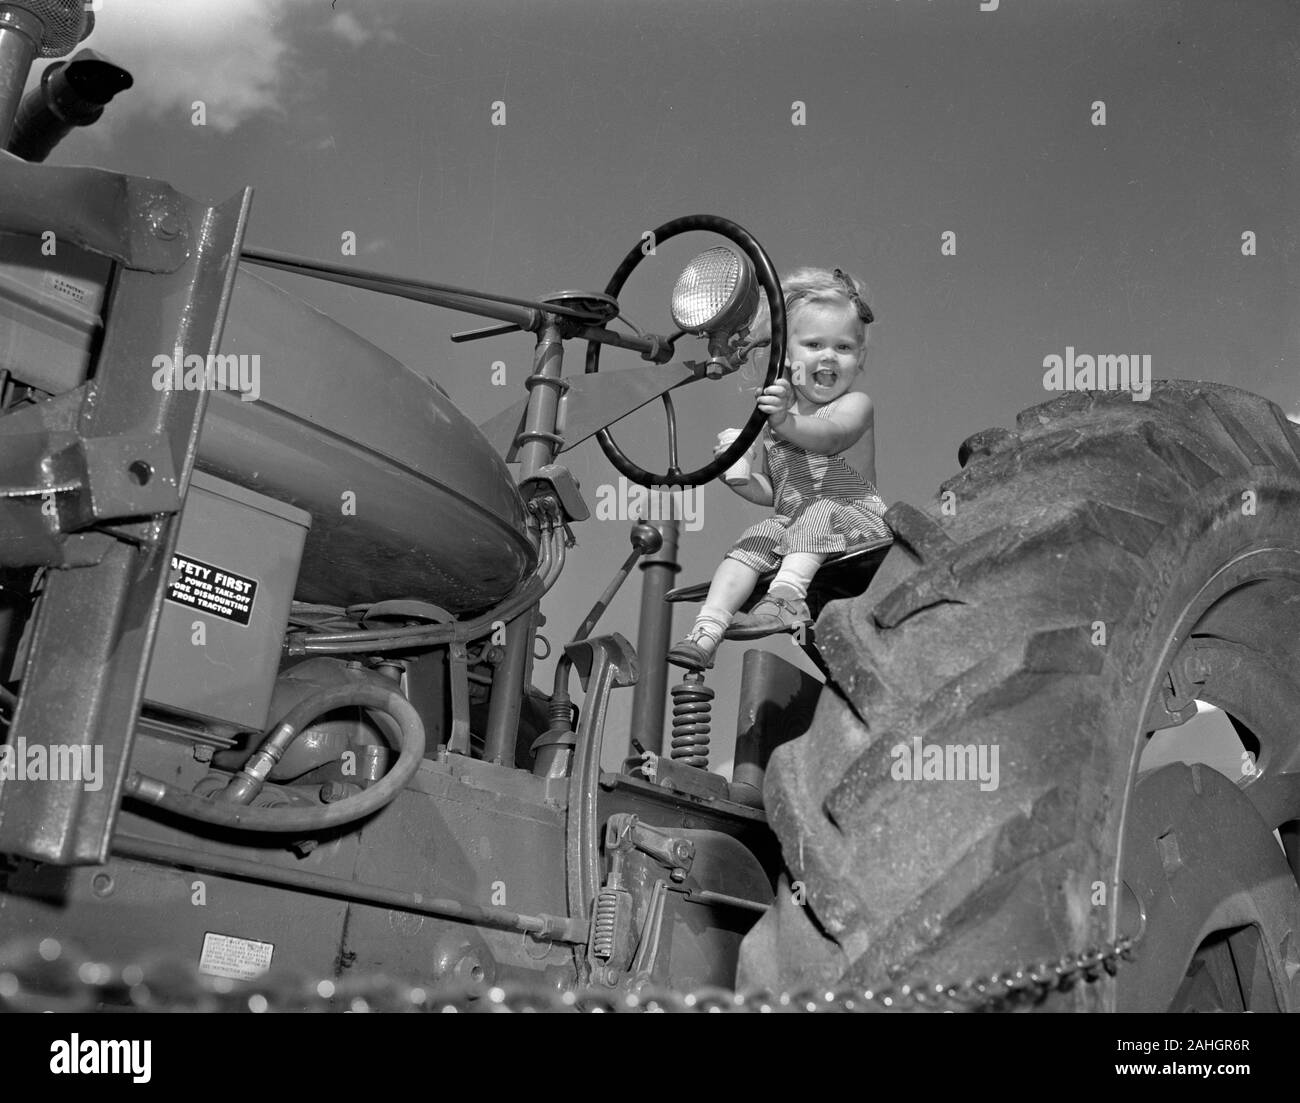 A girl sits on a tractor while eating ice cream, 1946 Stock Photo